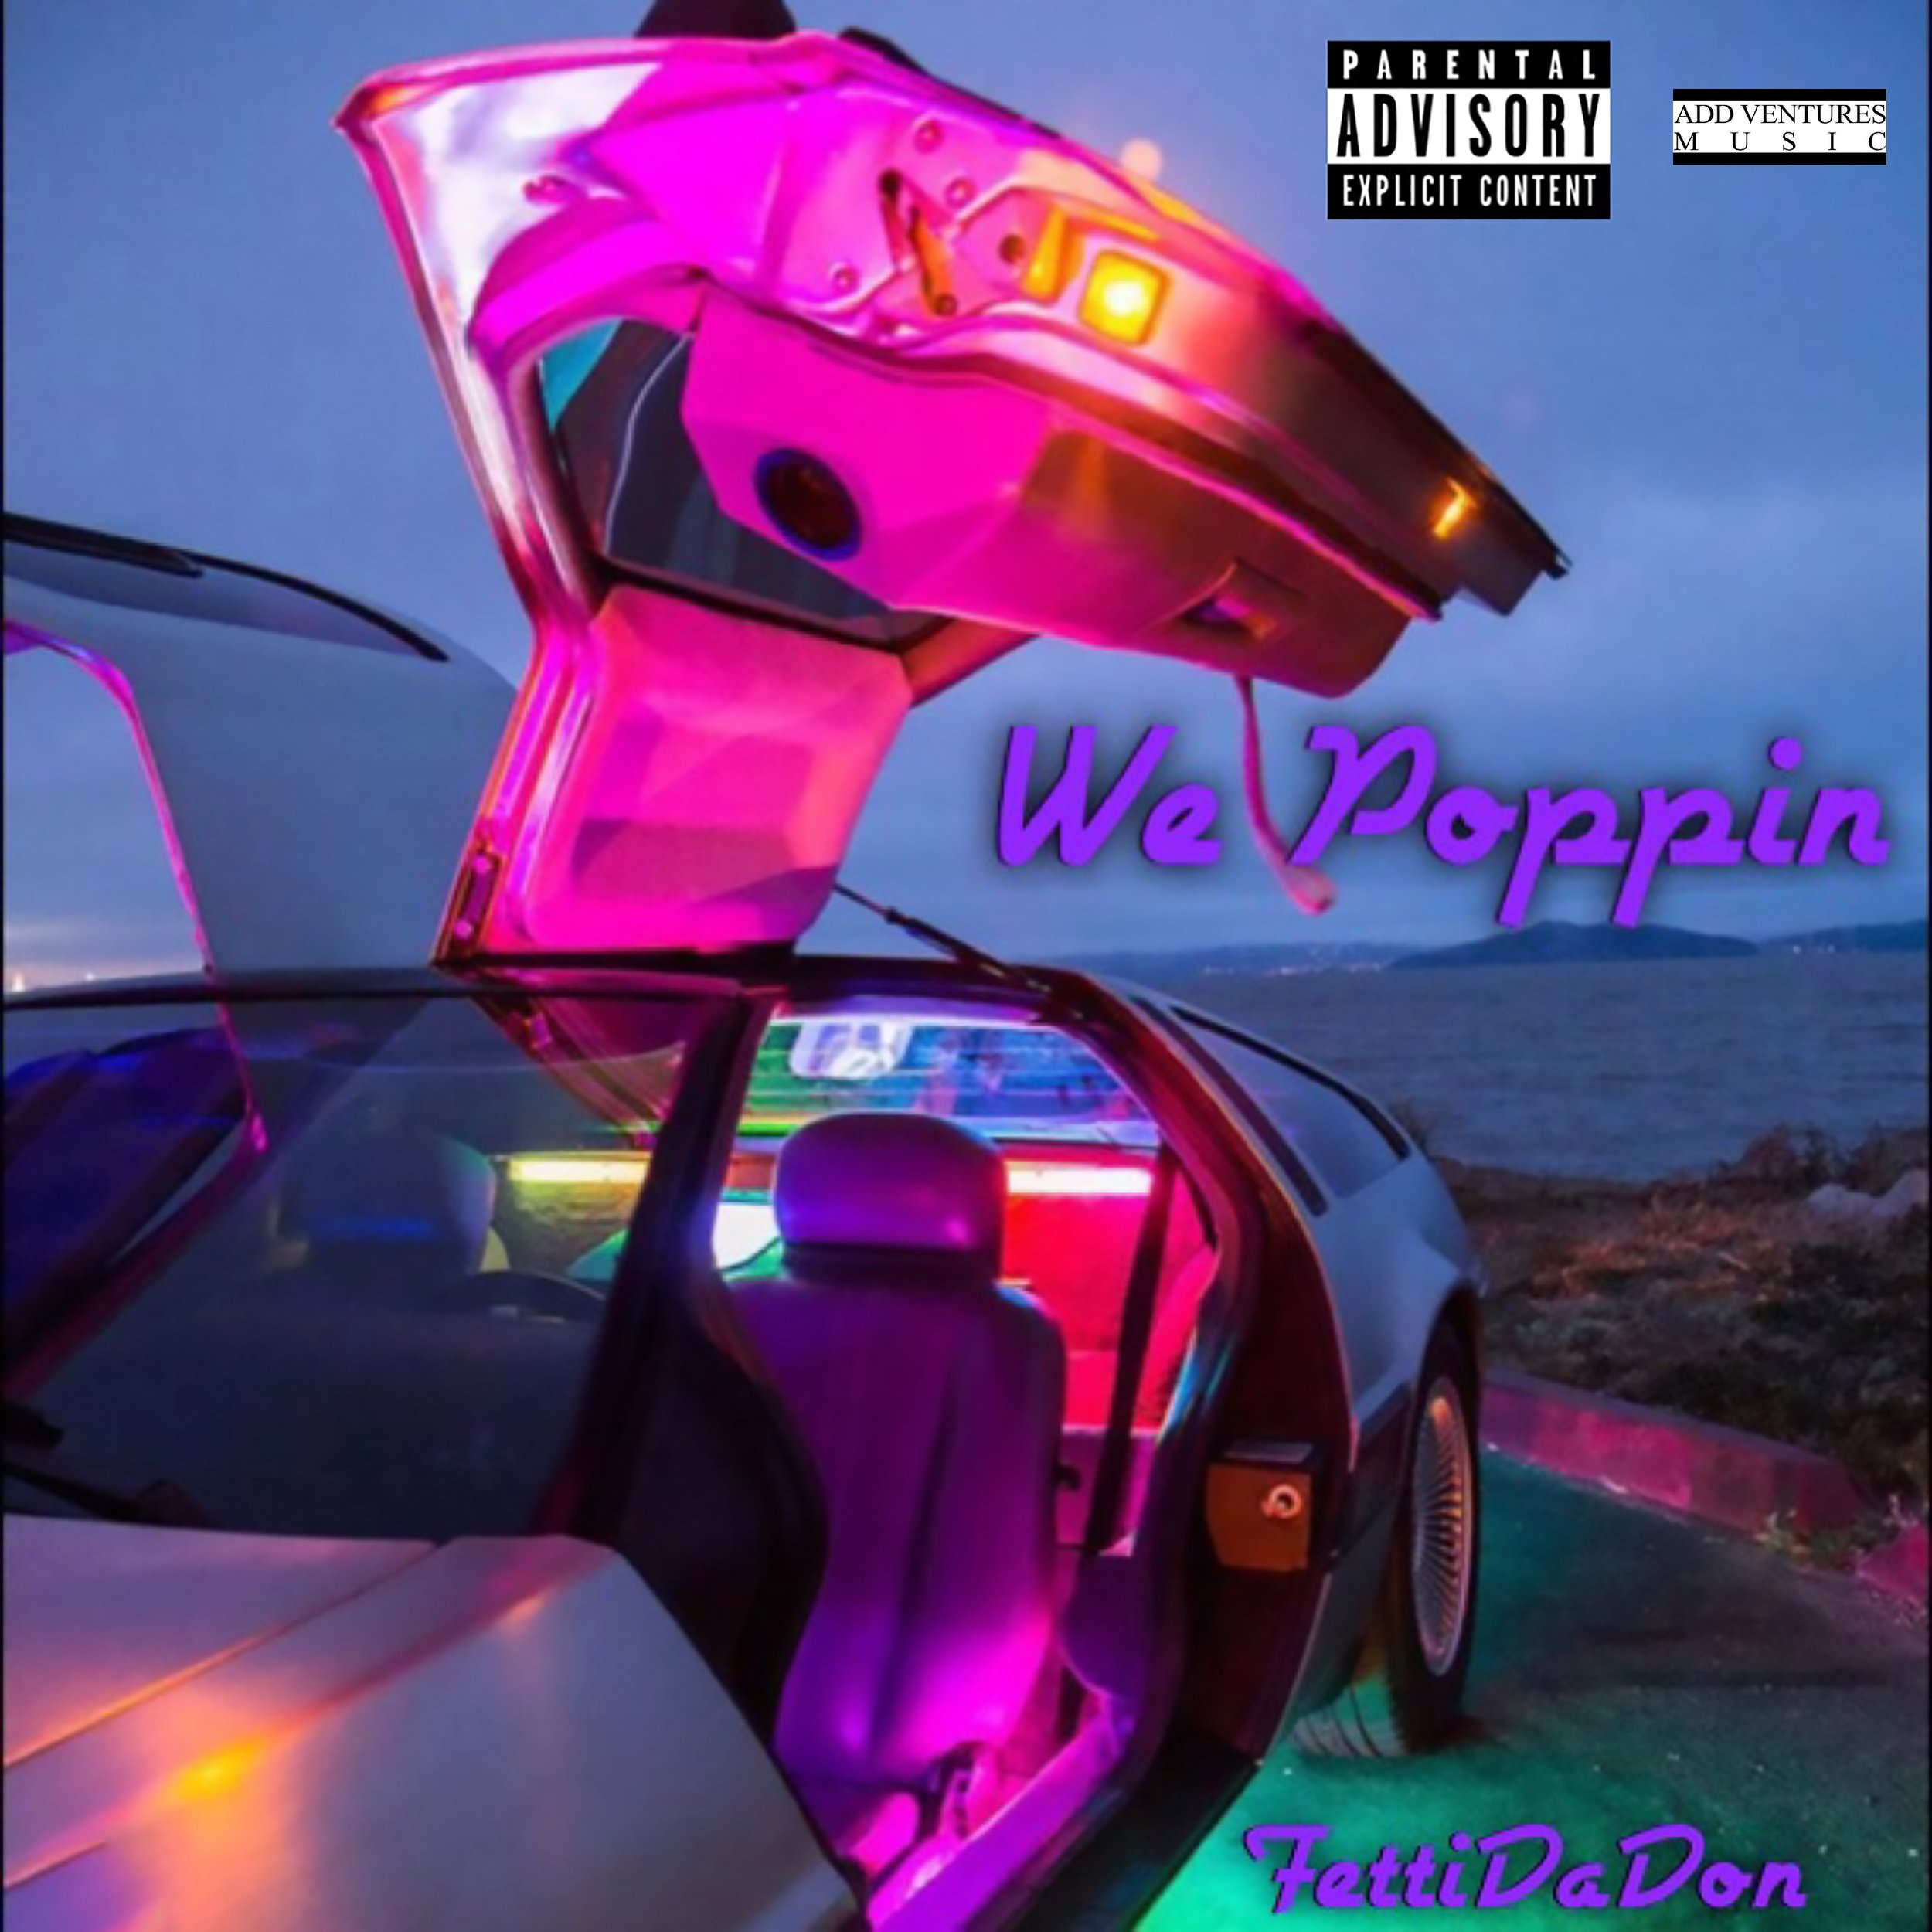 Fetti Da Don - WE Poppin  - Explicit Single Cover Art - USE.jpeg